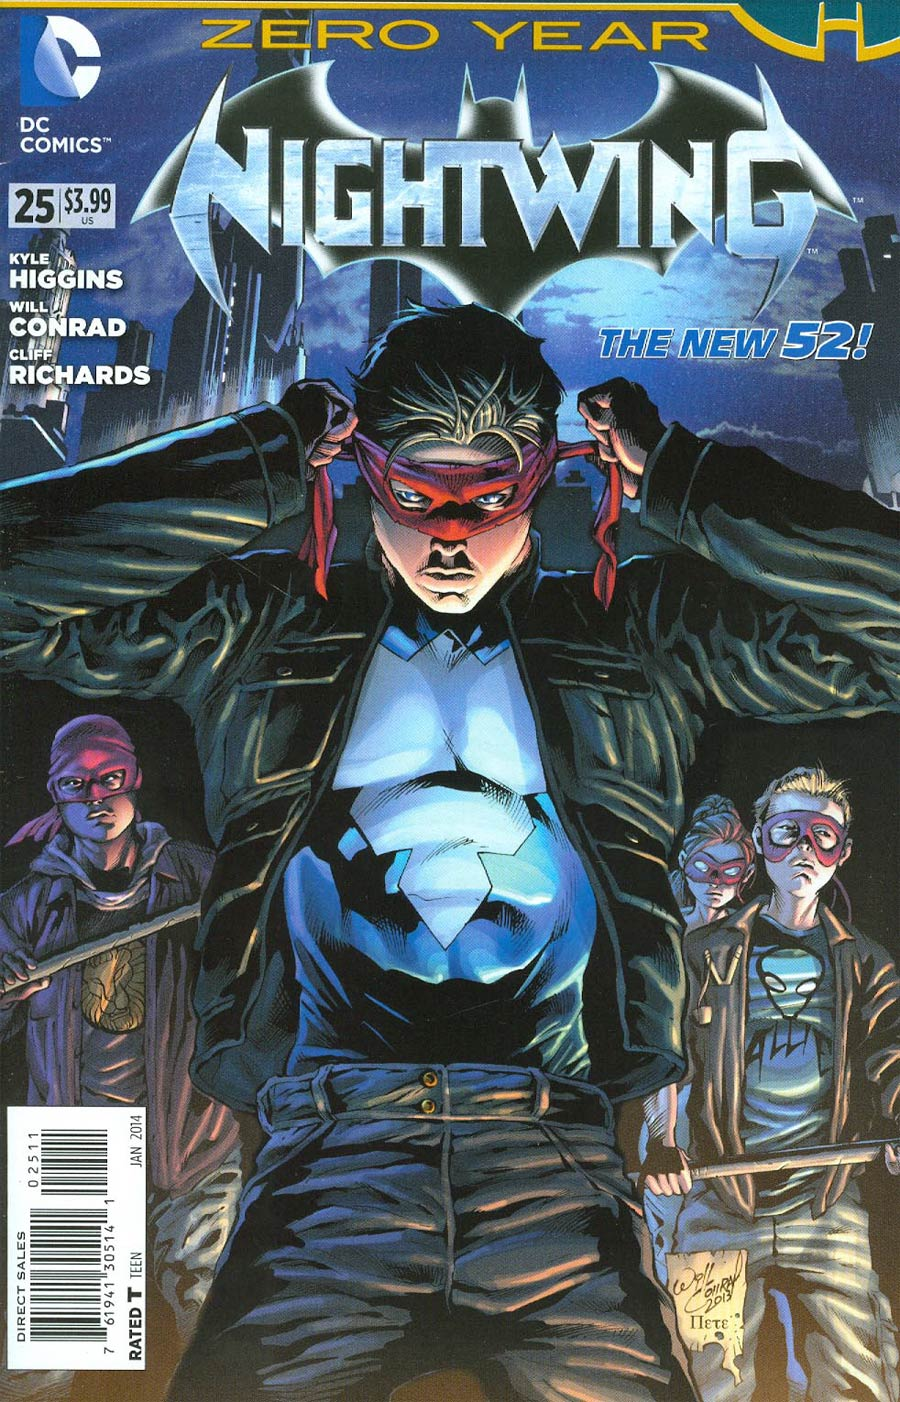 Nightwing Vol 3 #25 (Batman Zero Year Tie-In)